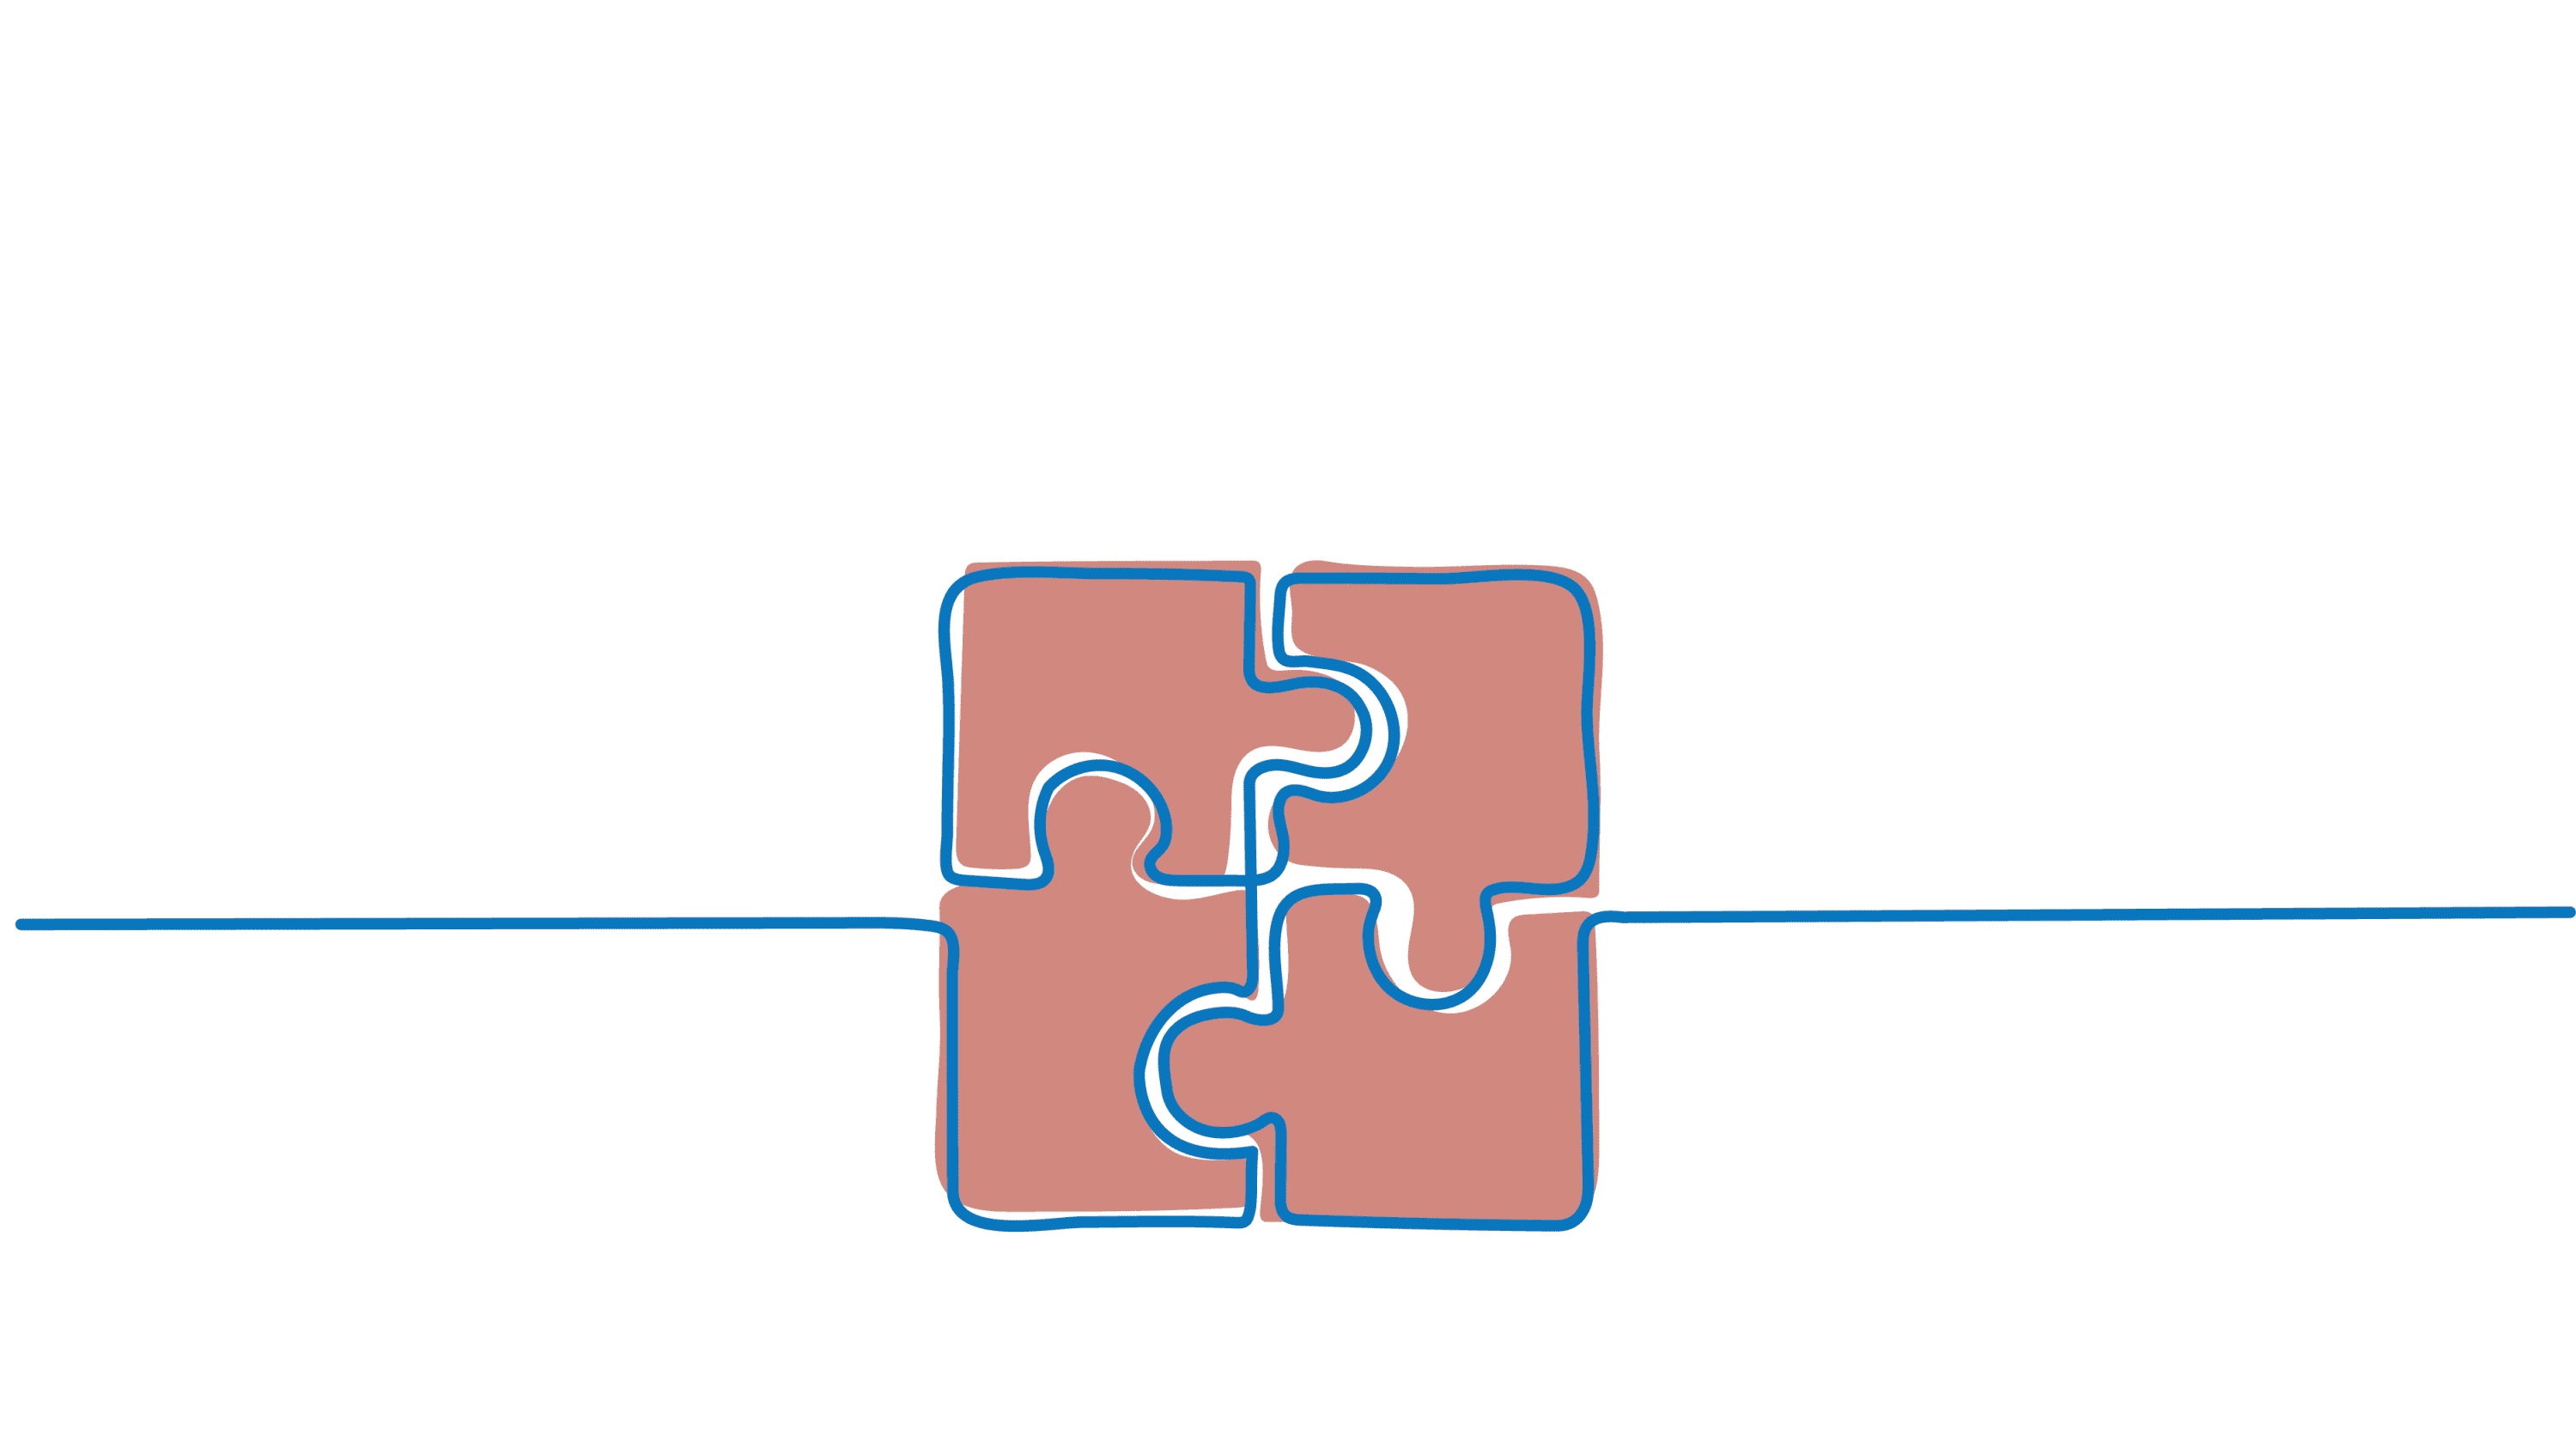 Line drawing of puzzle pieces fitting together